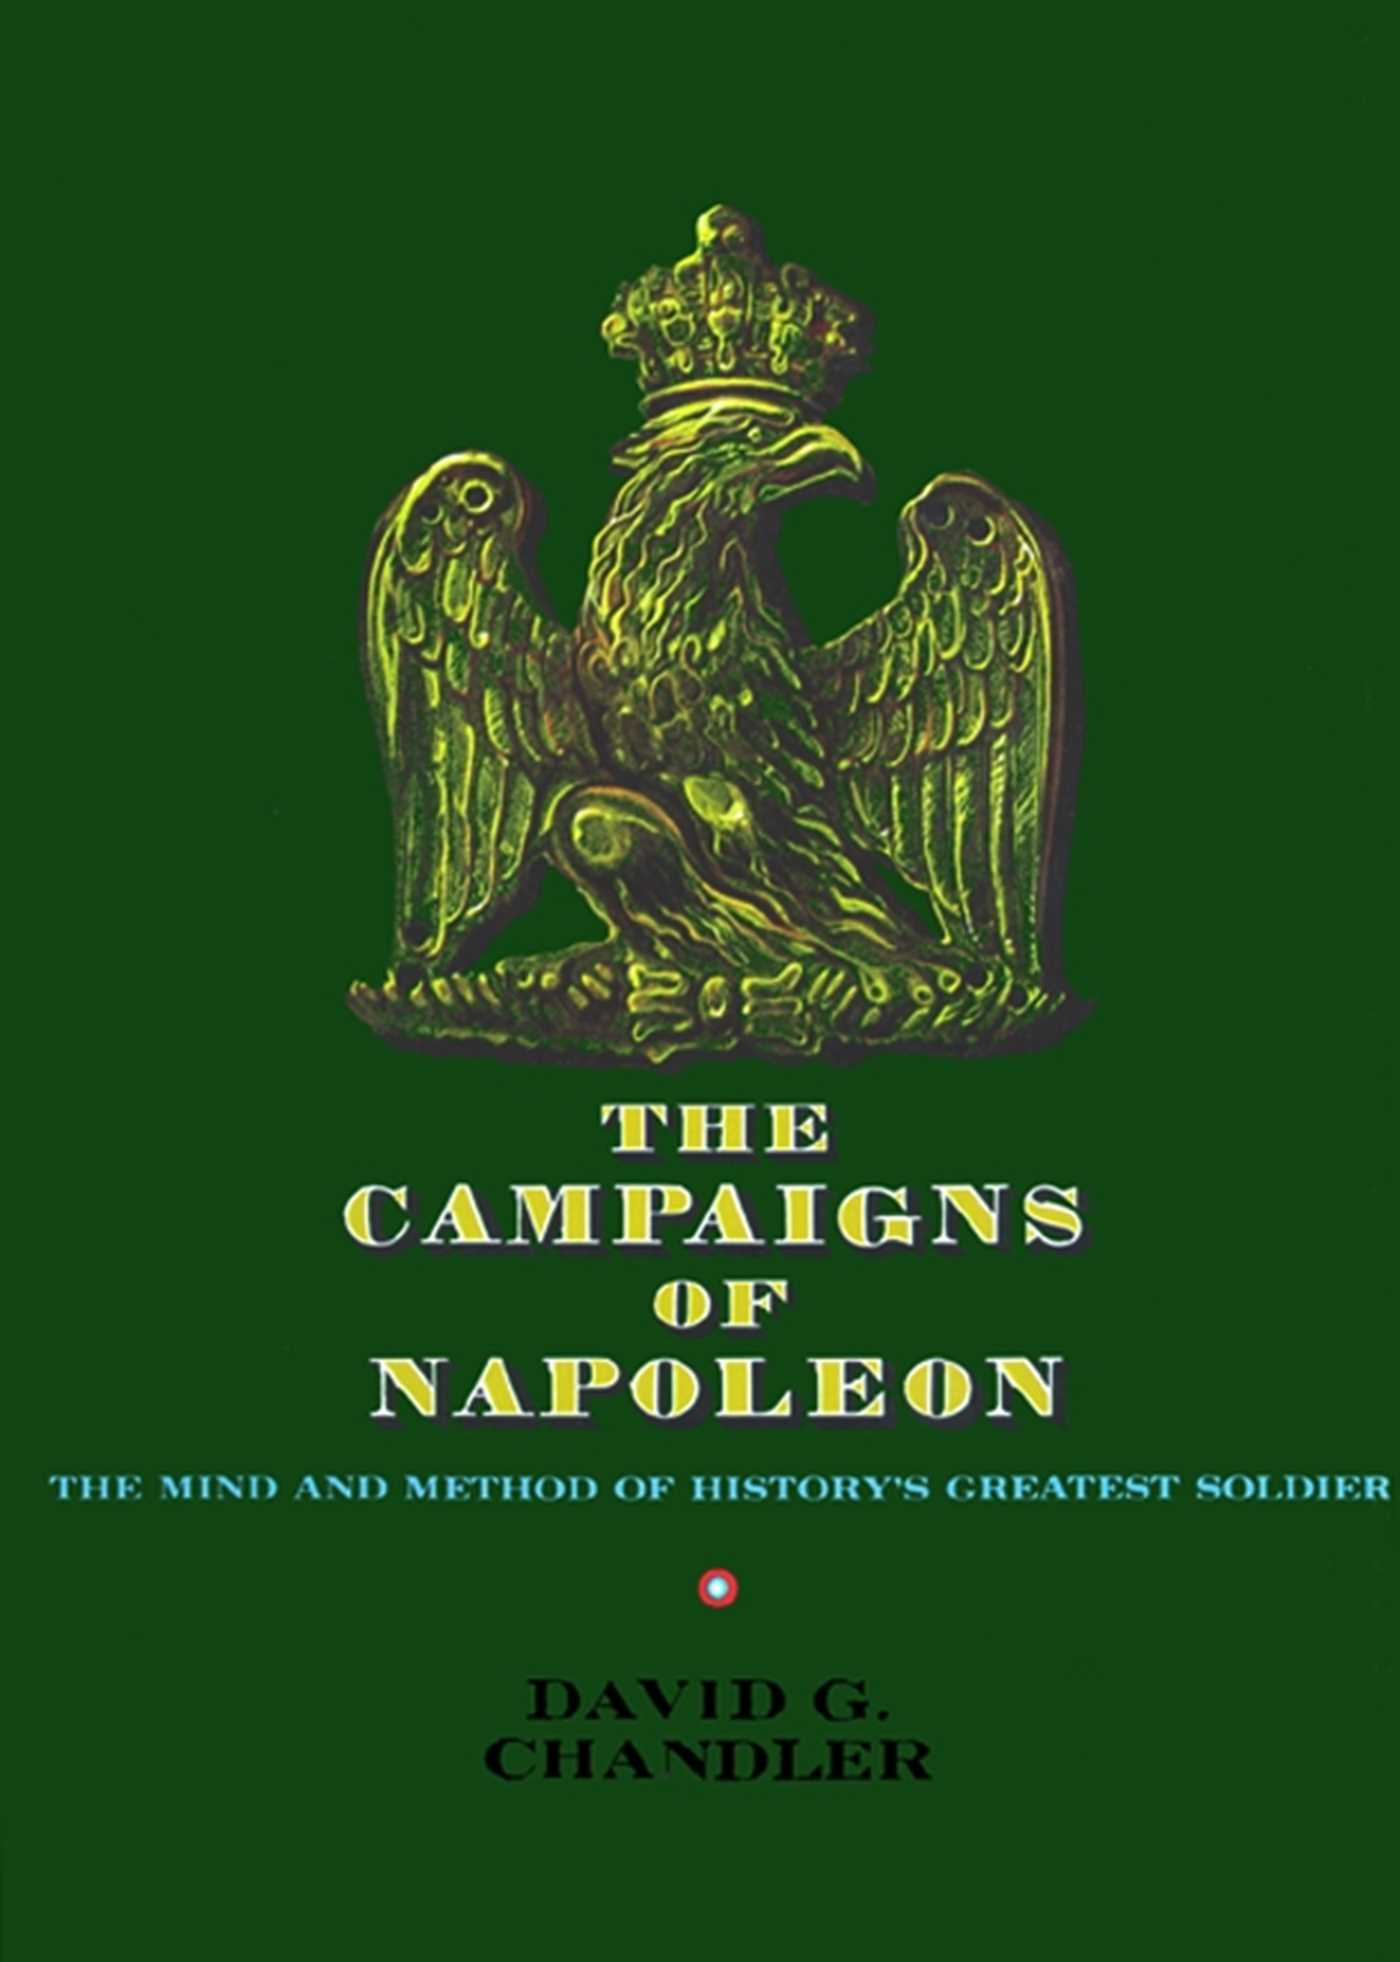 The campaigns of napoleon 9781439131039 hr